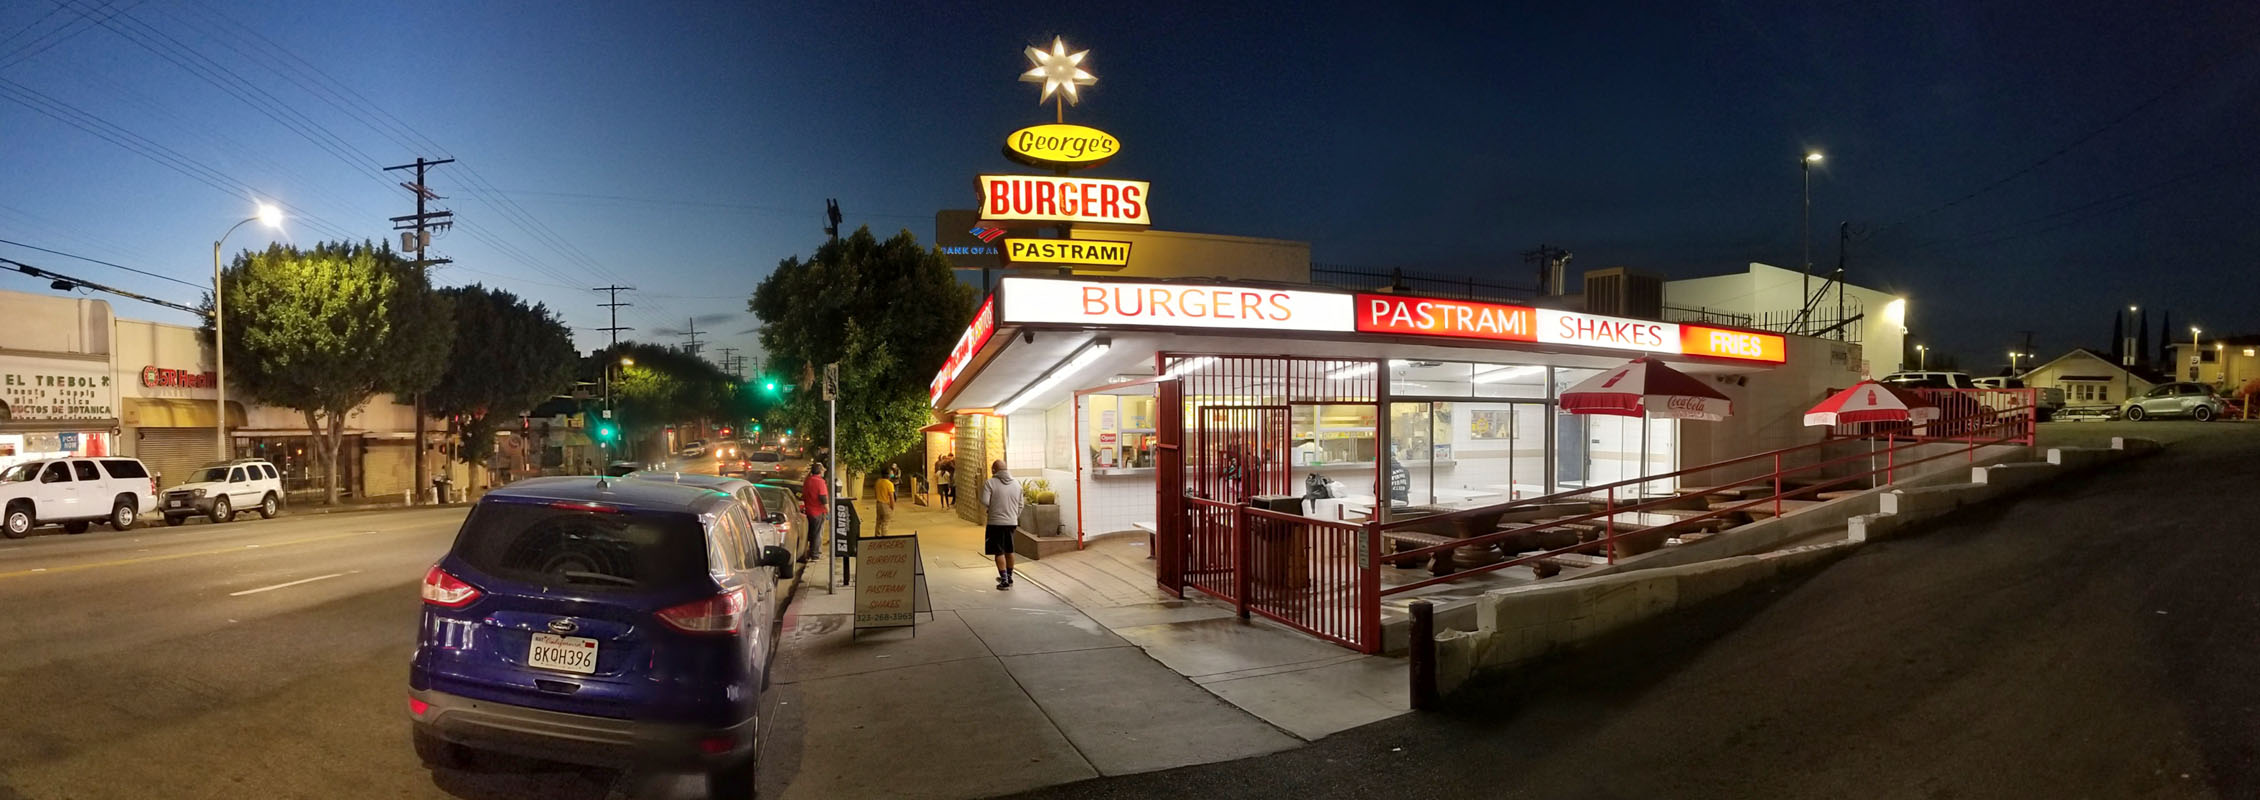 George's Burger Stand Exterior